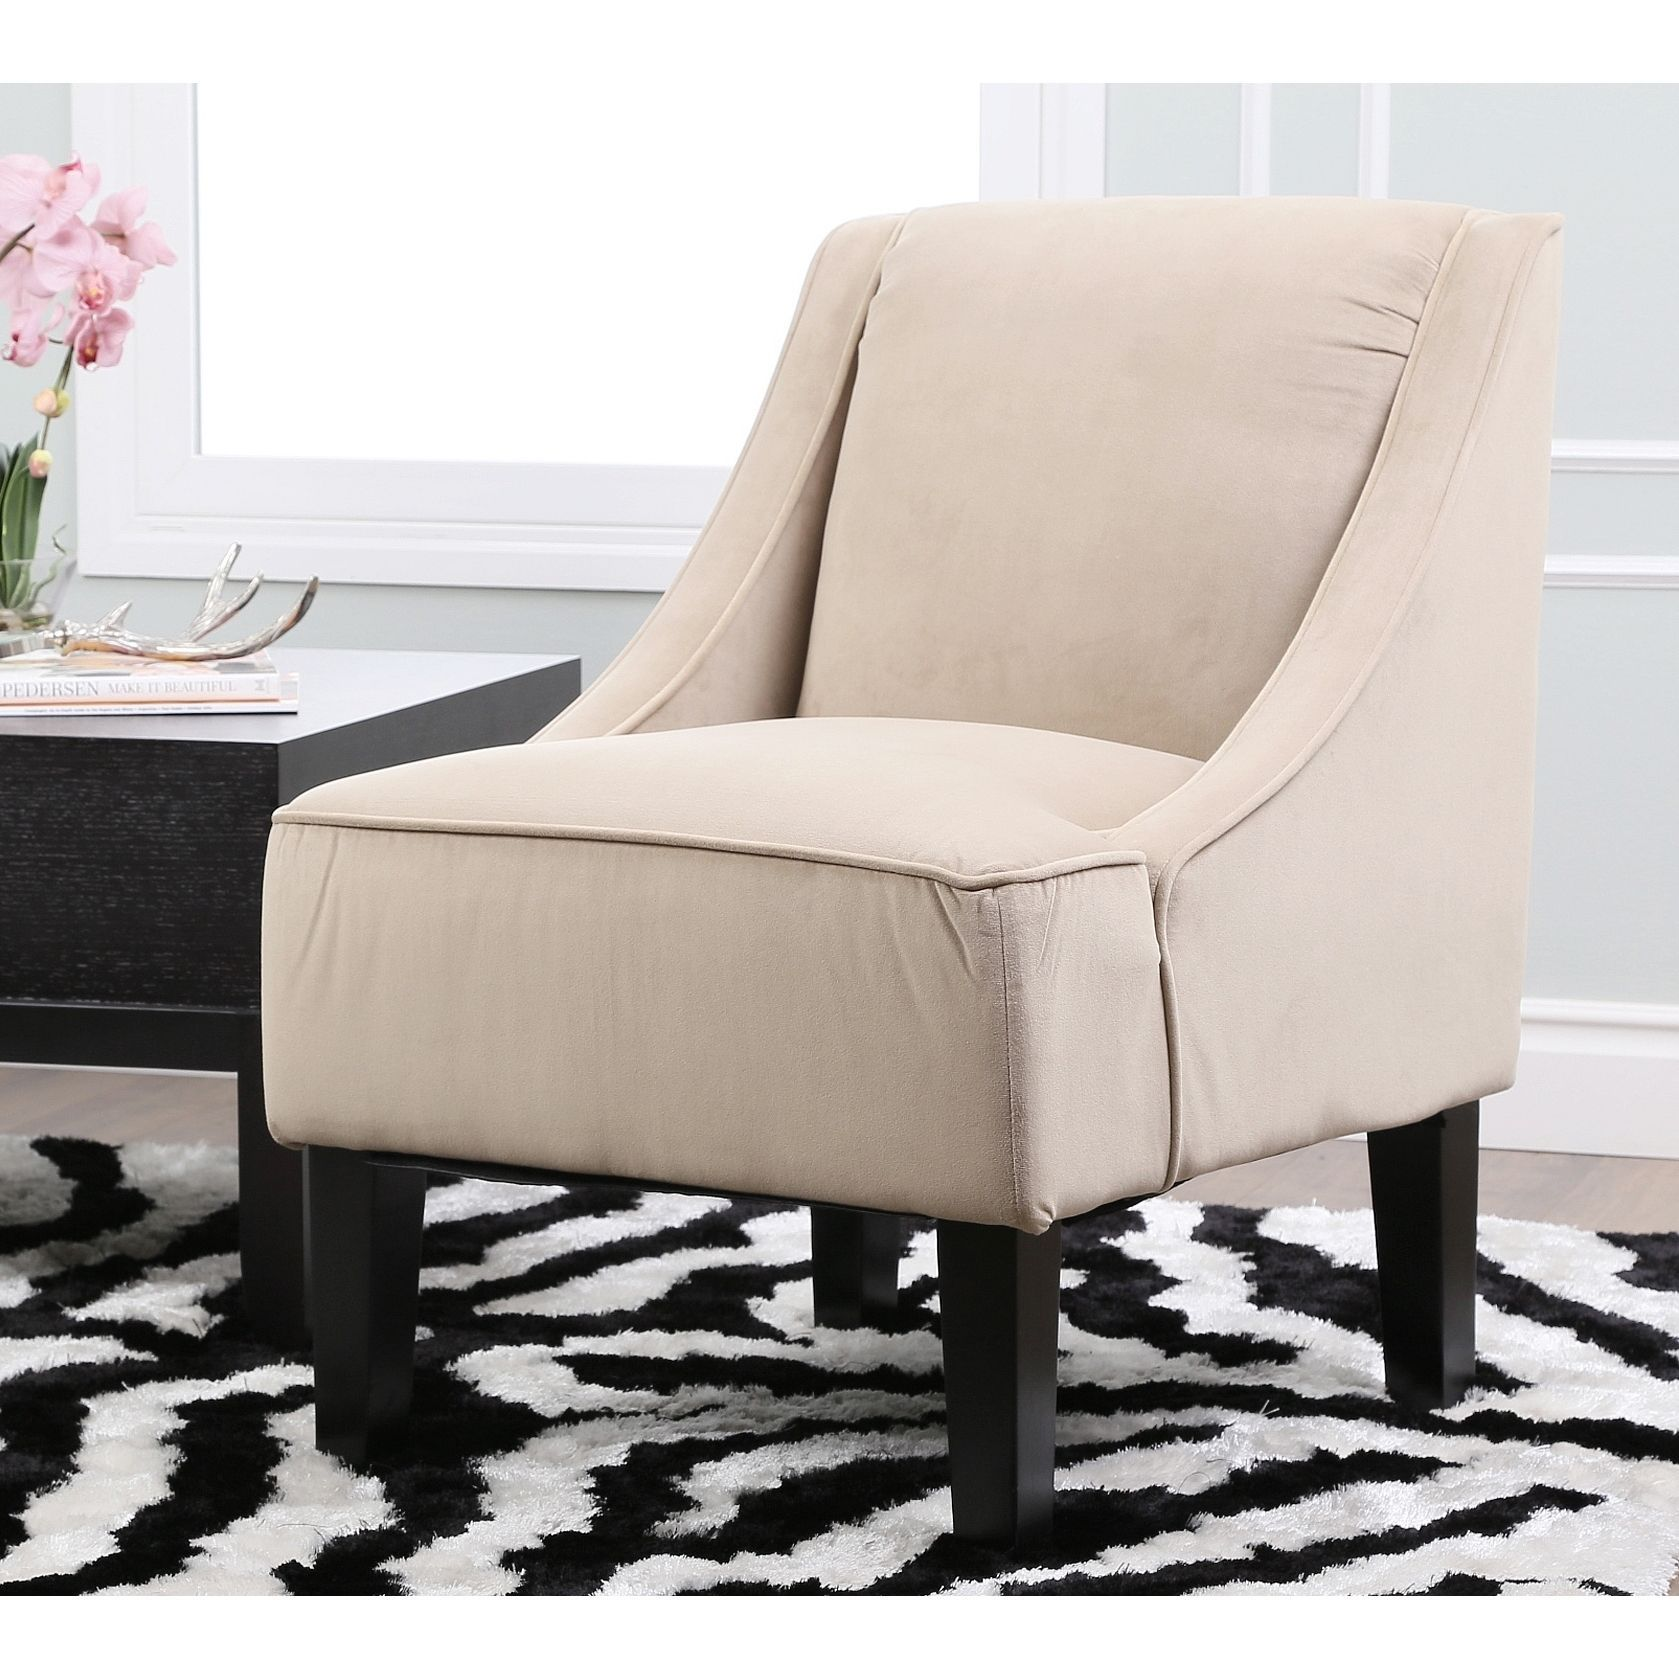 ABBYSON LIVING Cameron Taupe Suede Swoop Chair by Abbyson